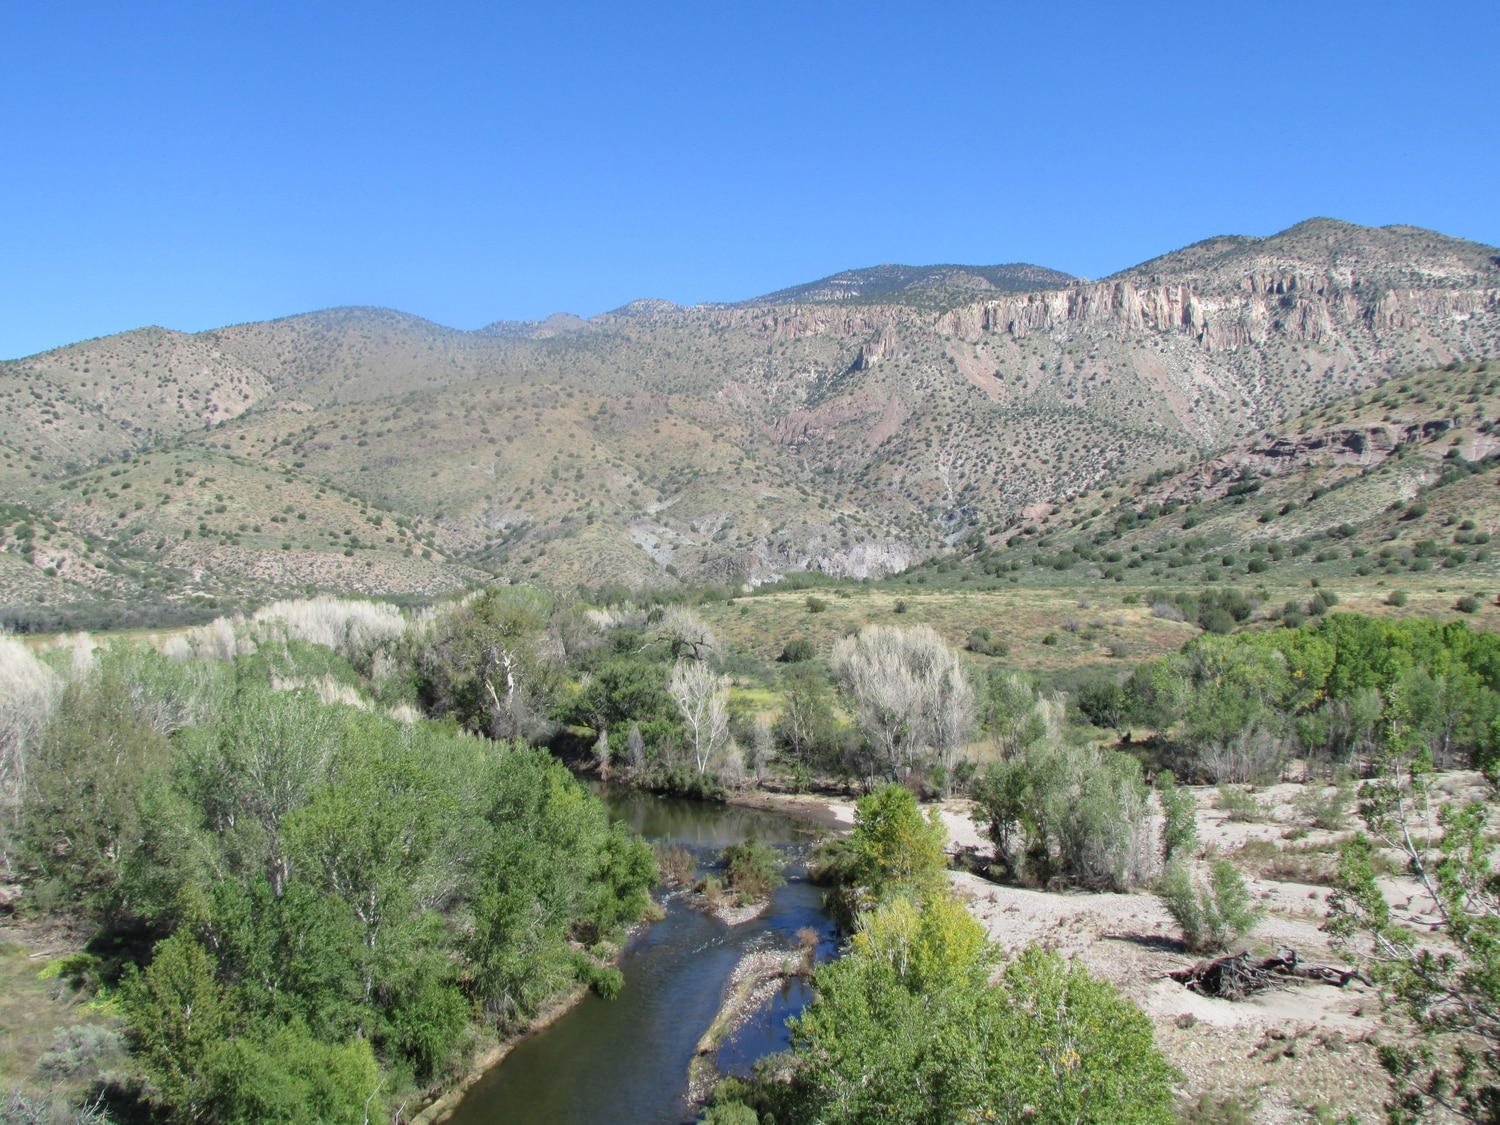 Gila River just downstream of the proposed diversion in the Cliff-Gila Valley